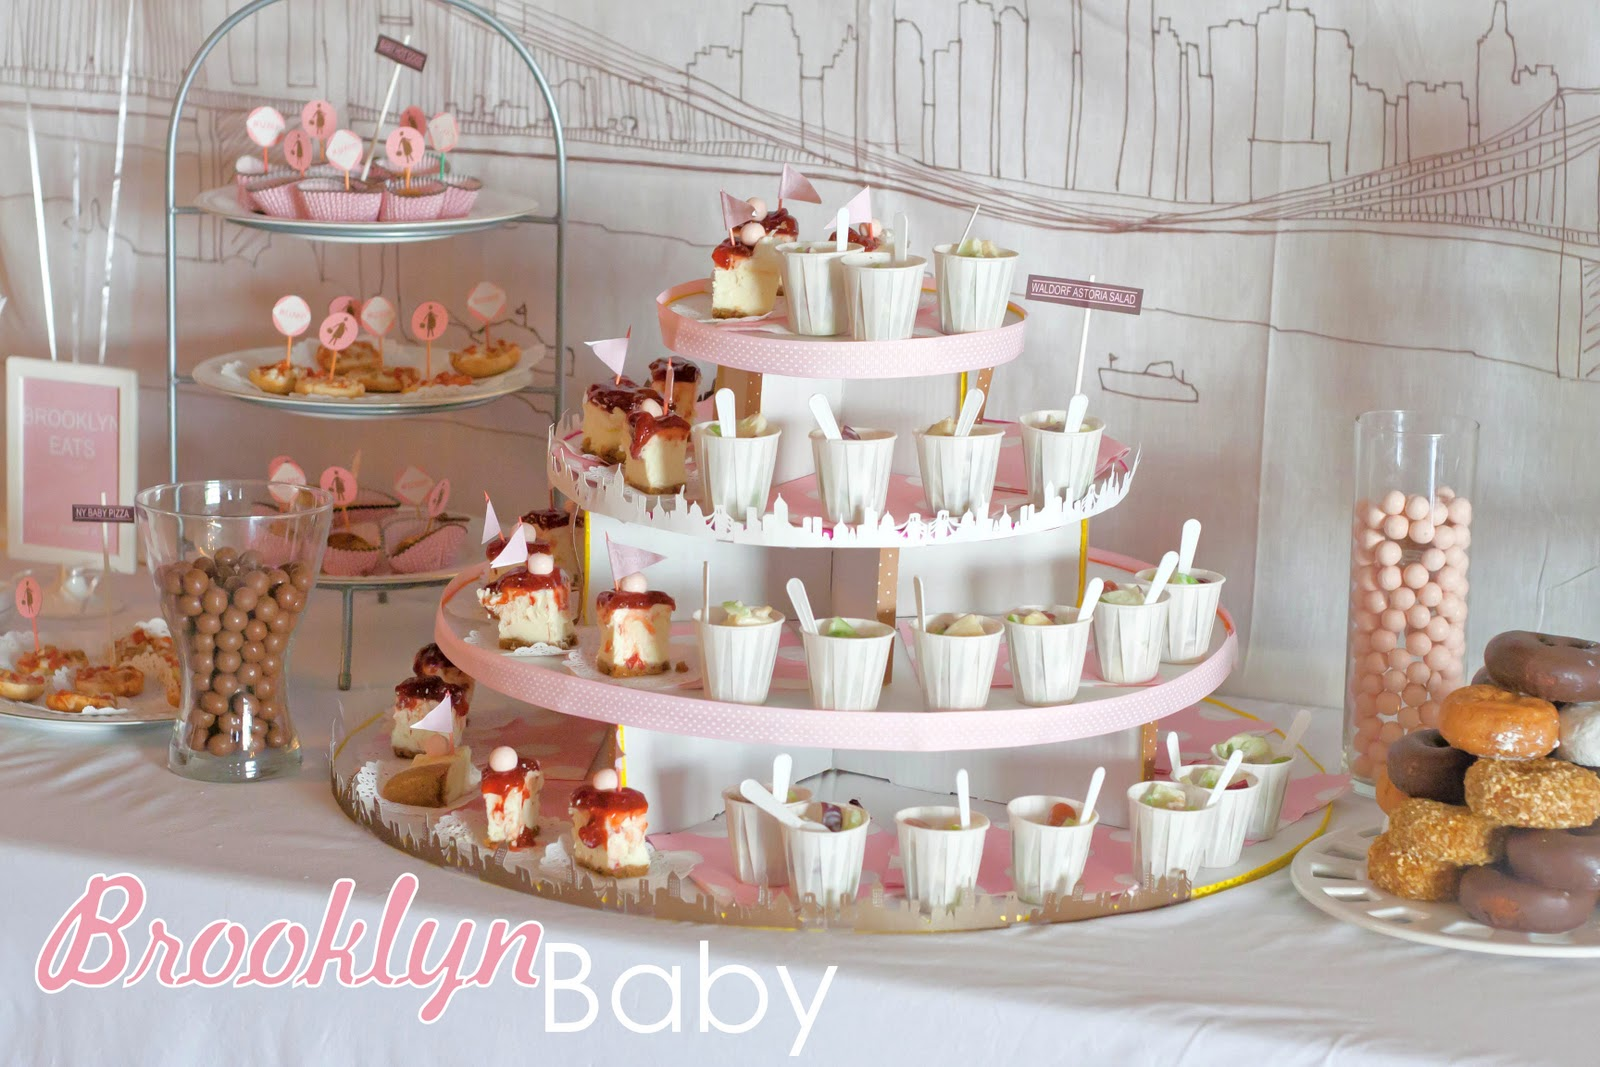 Brooklyn Baby, A unique baby shower